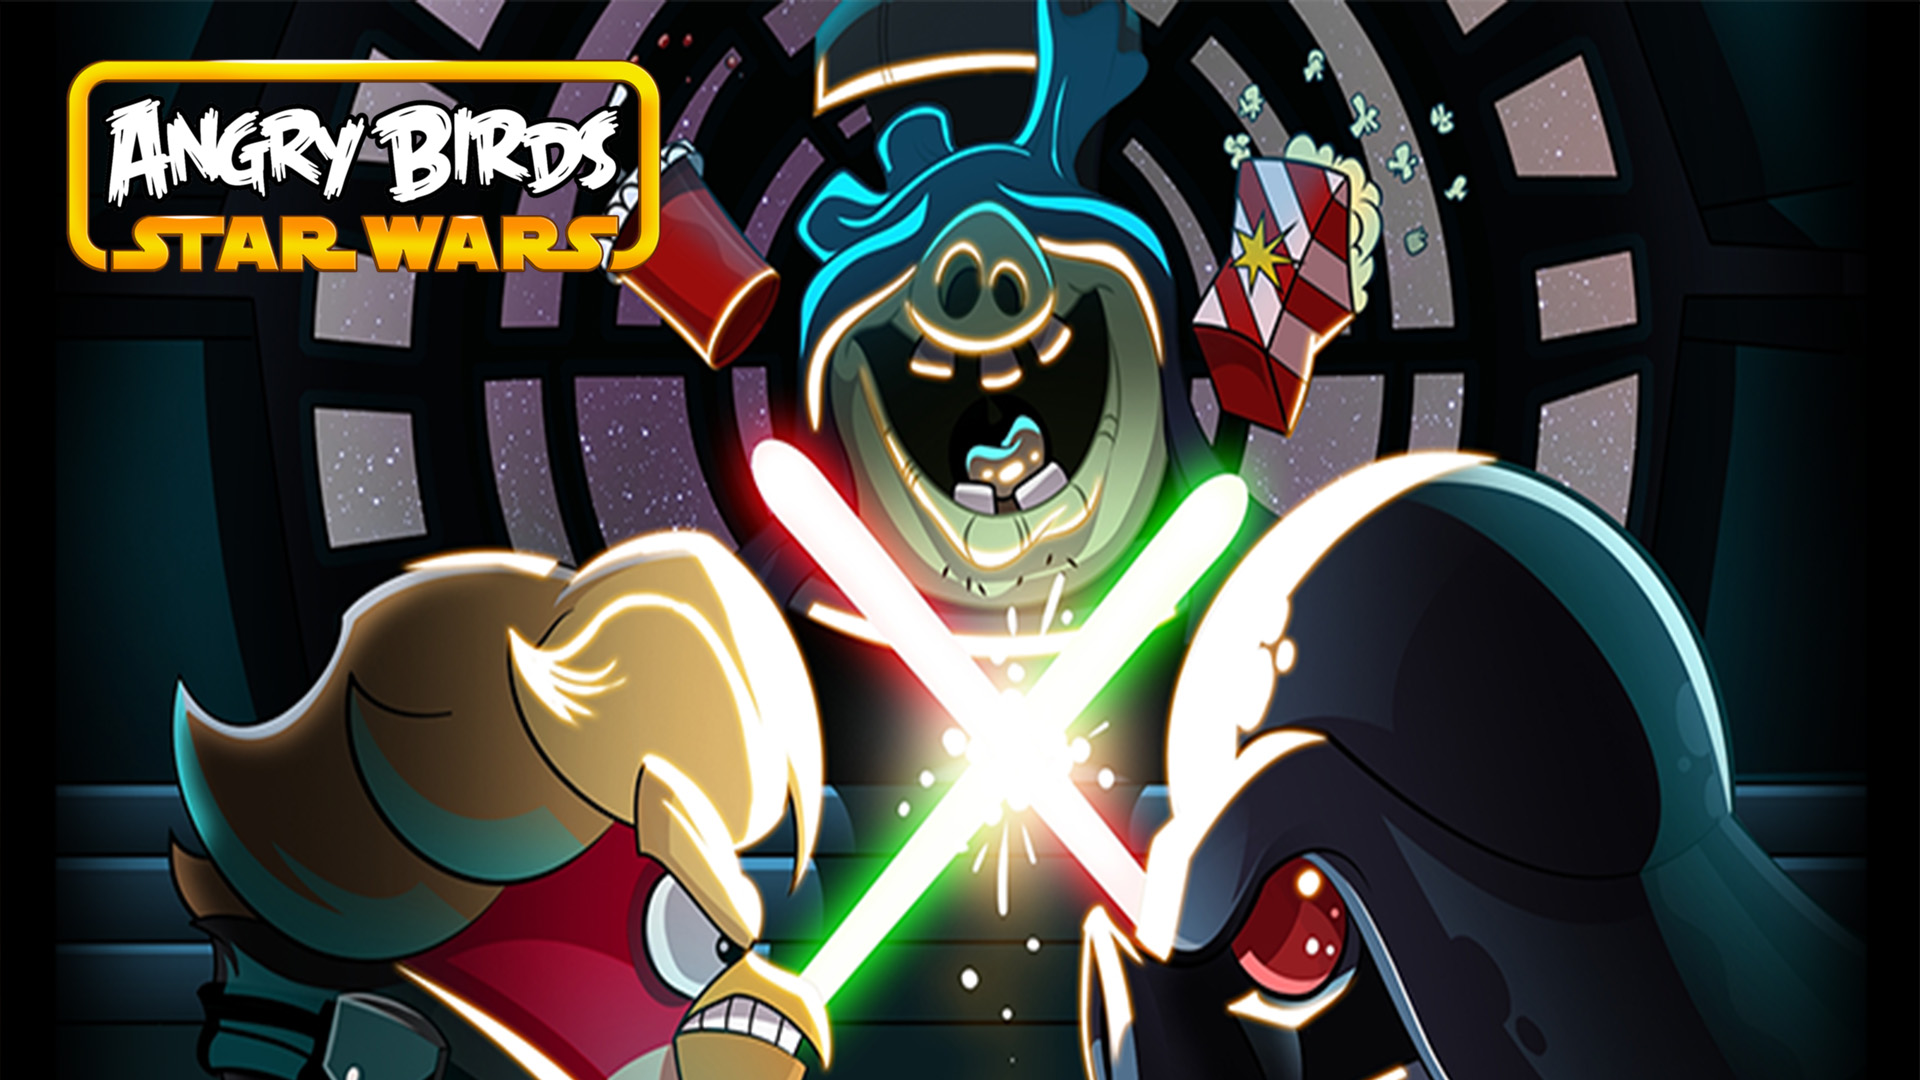 Angry birds star wars fond d 39 cran hd arri re plan 1920x1080 id 530925 wallpaper abyss - Telecharger angry birds star wars ...